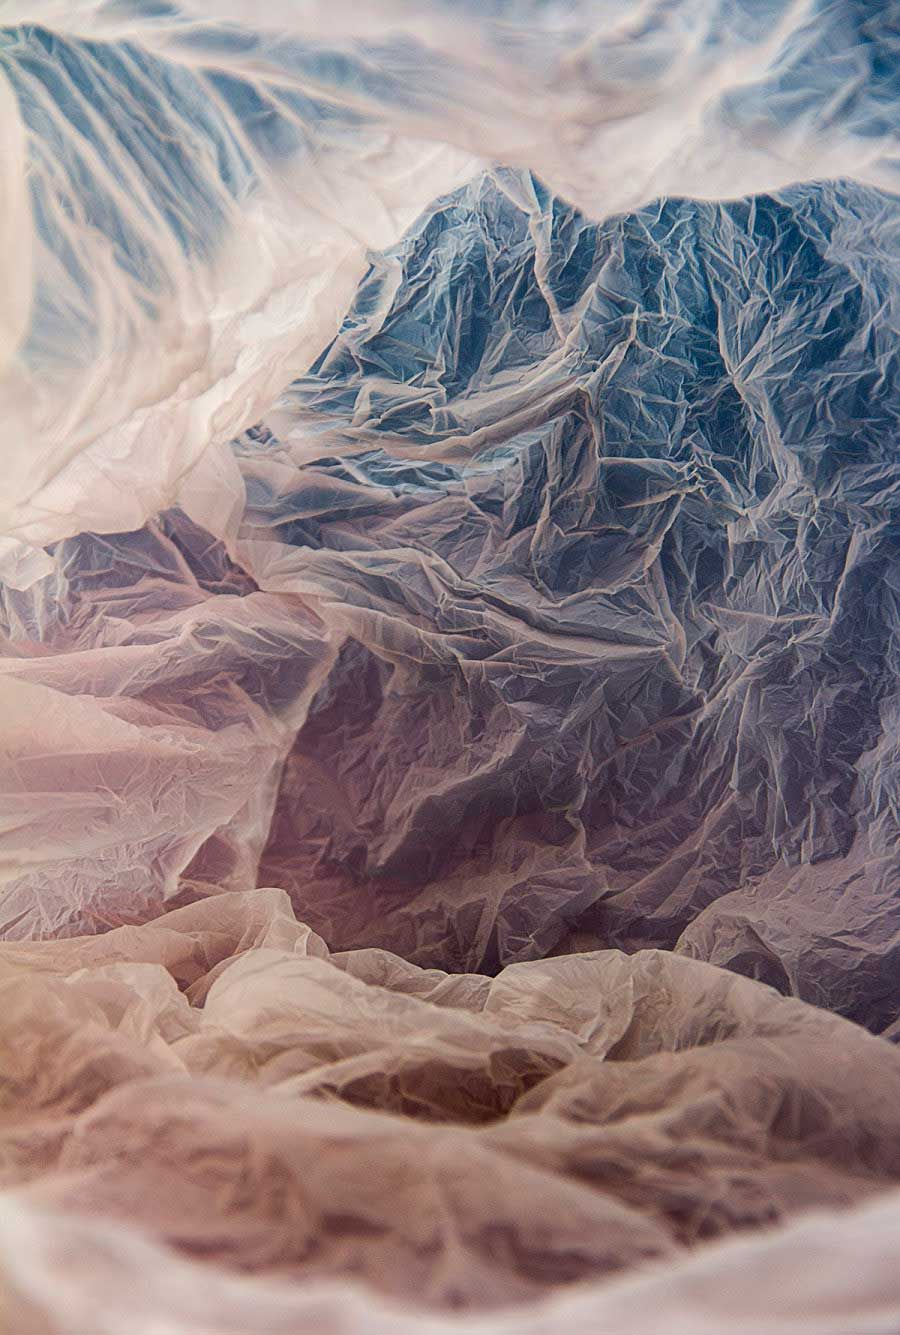 Magical Landscapes Created Within Plastic Bags by Vilde